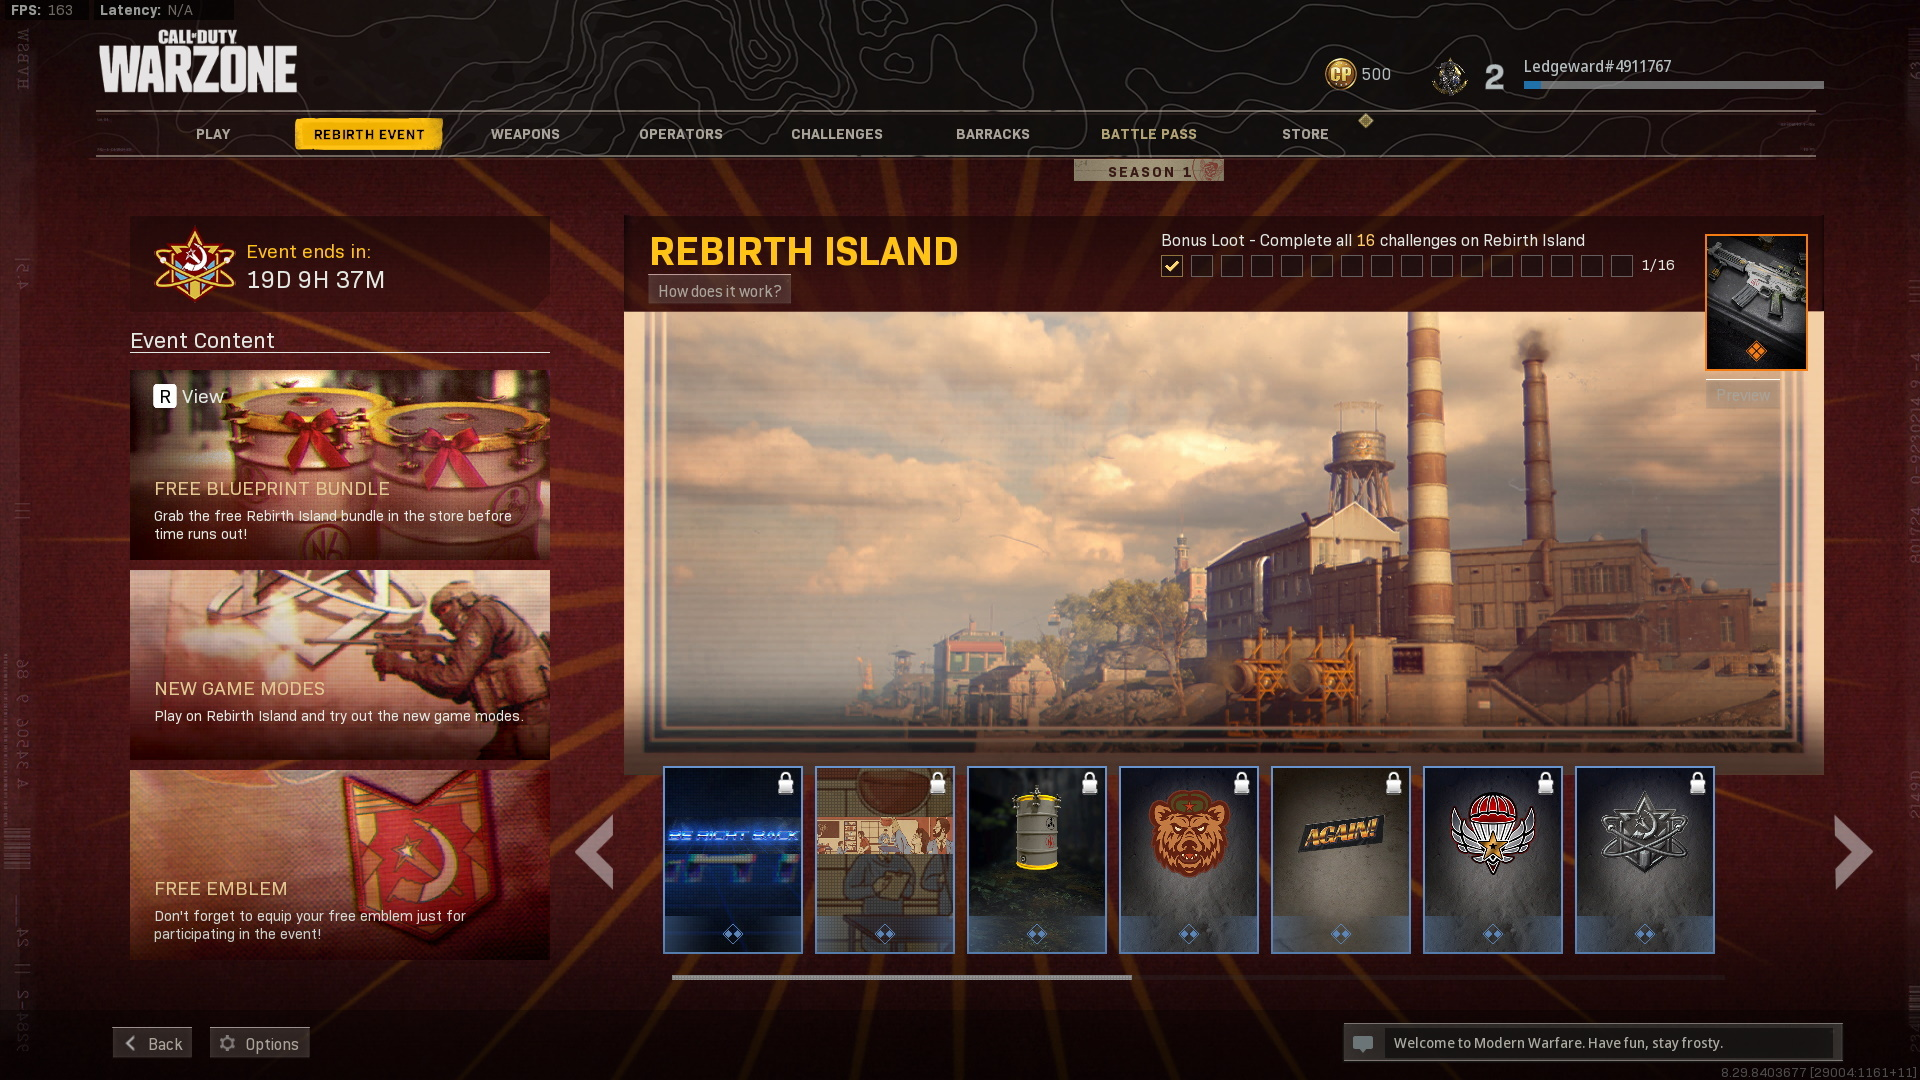 Rebirth Island event tab in Cold War Warzone